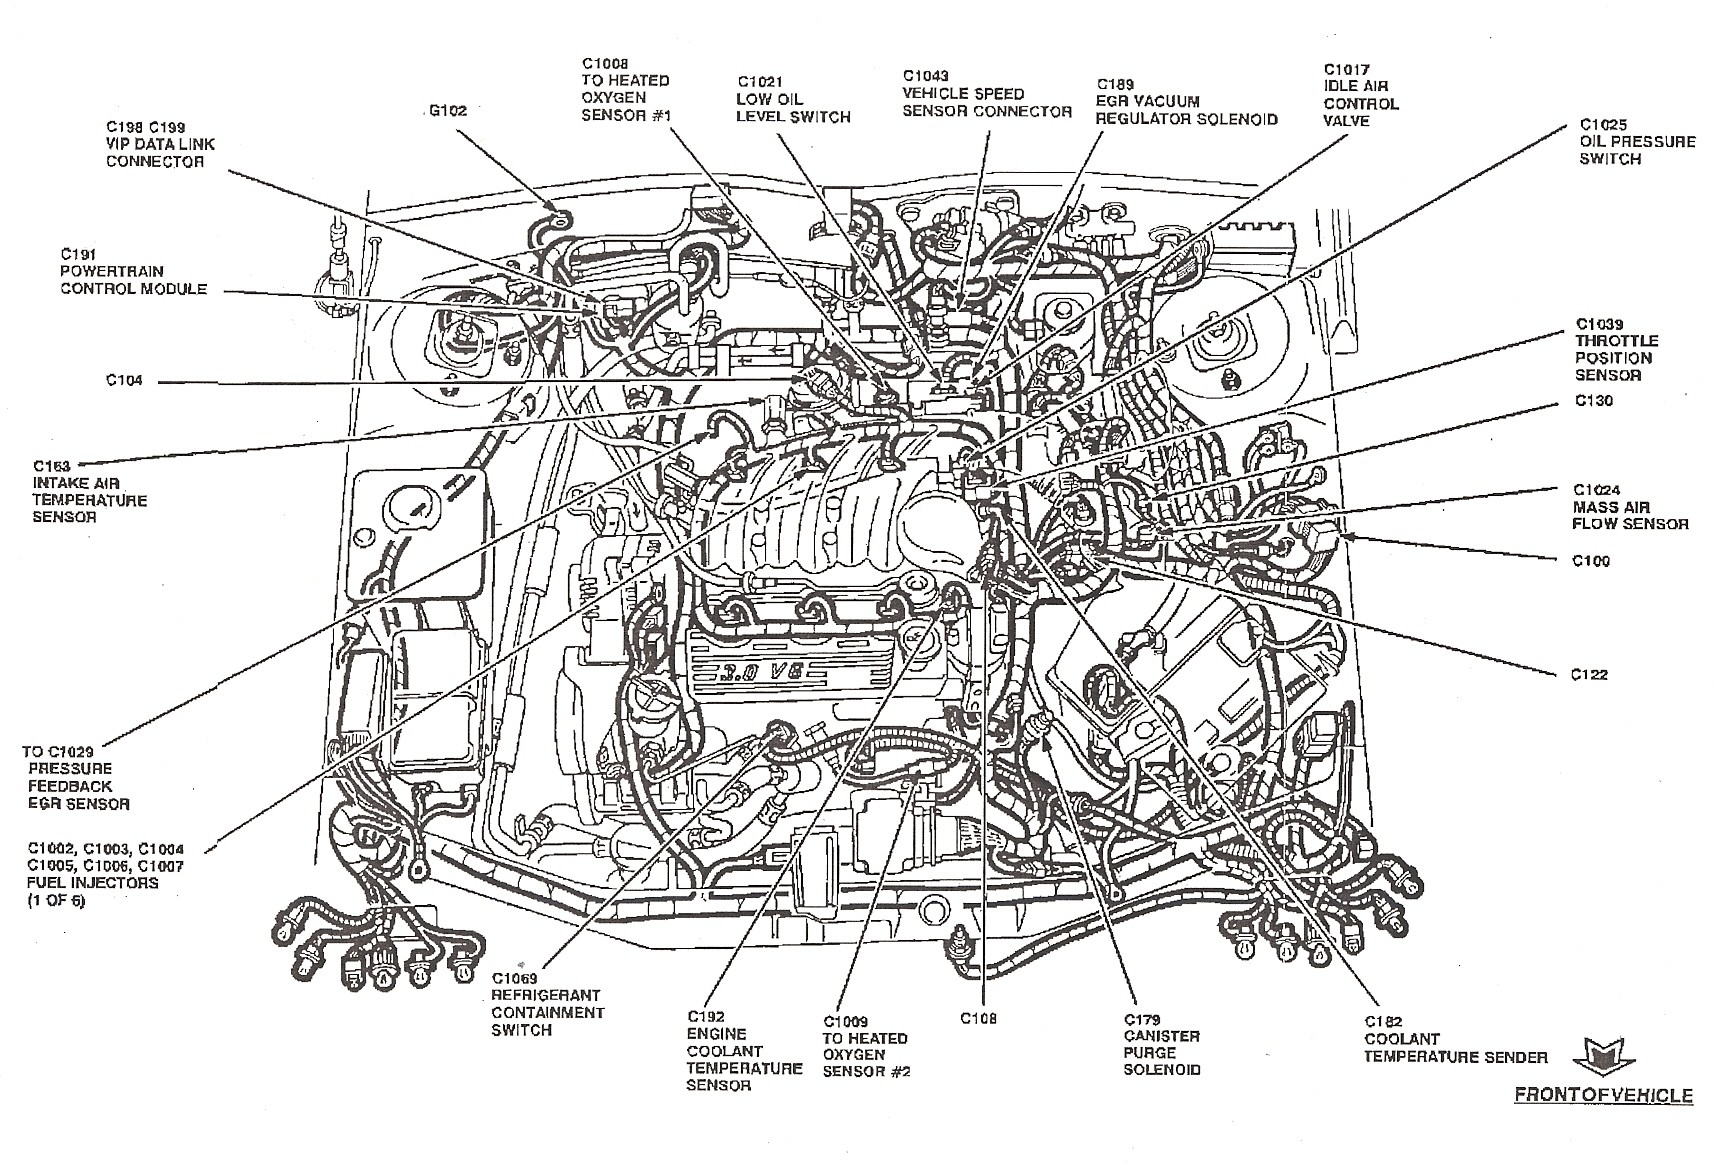 ford focus 2001 engine diagram 2005 ford focus engine diagram 4 cyl rh detoxicrecenze com 2000 ford focus engine diagram 2001 ford focus dohc engine diagram